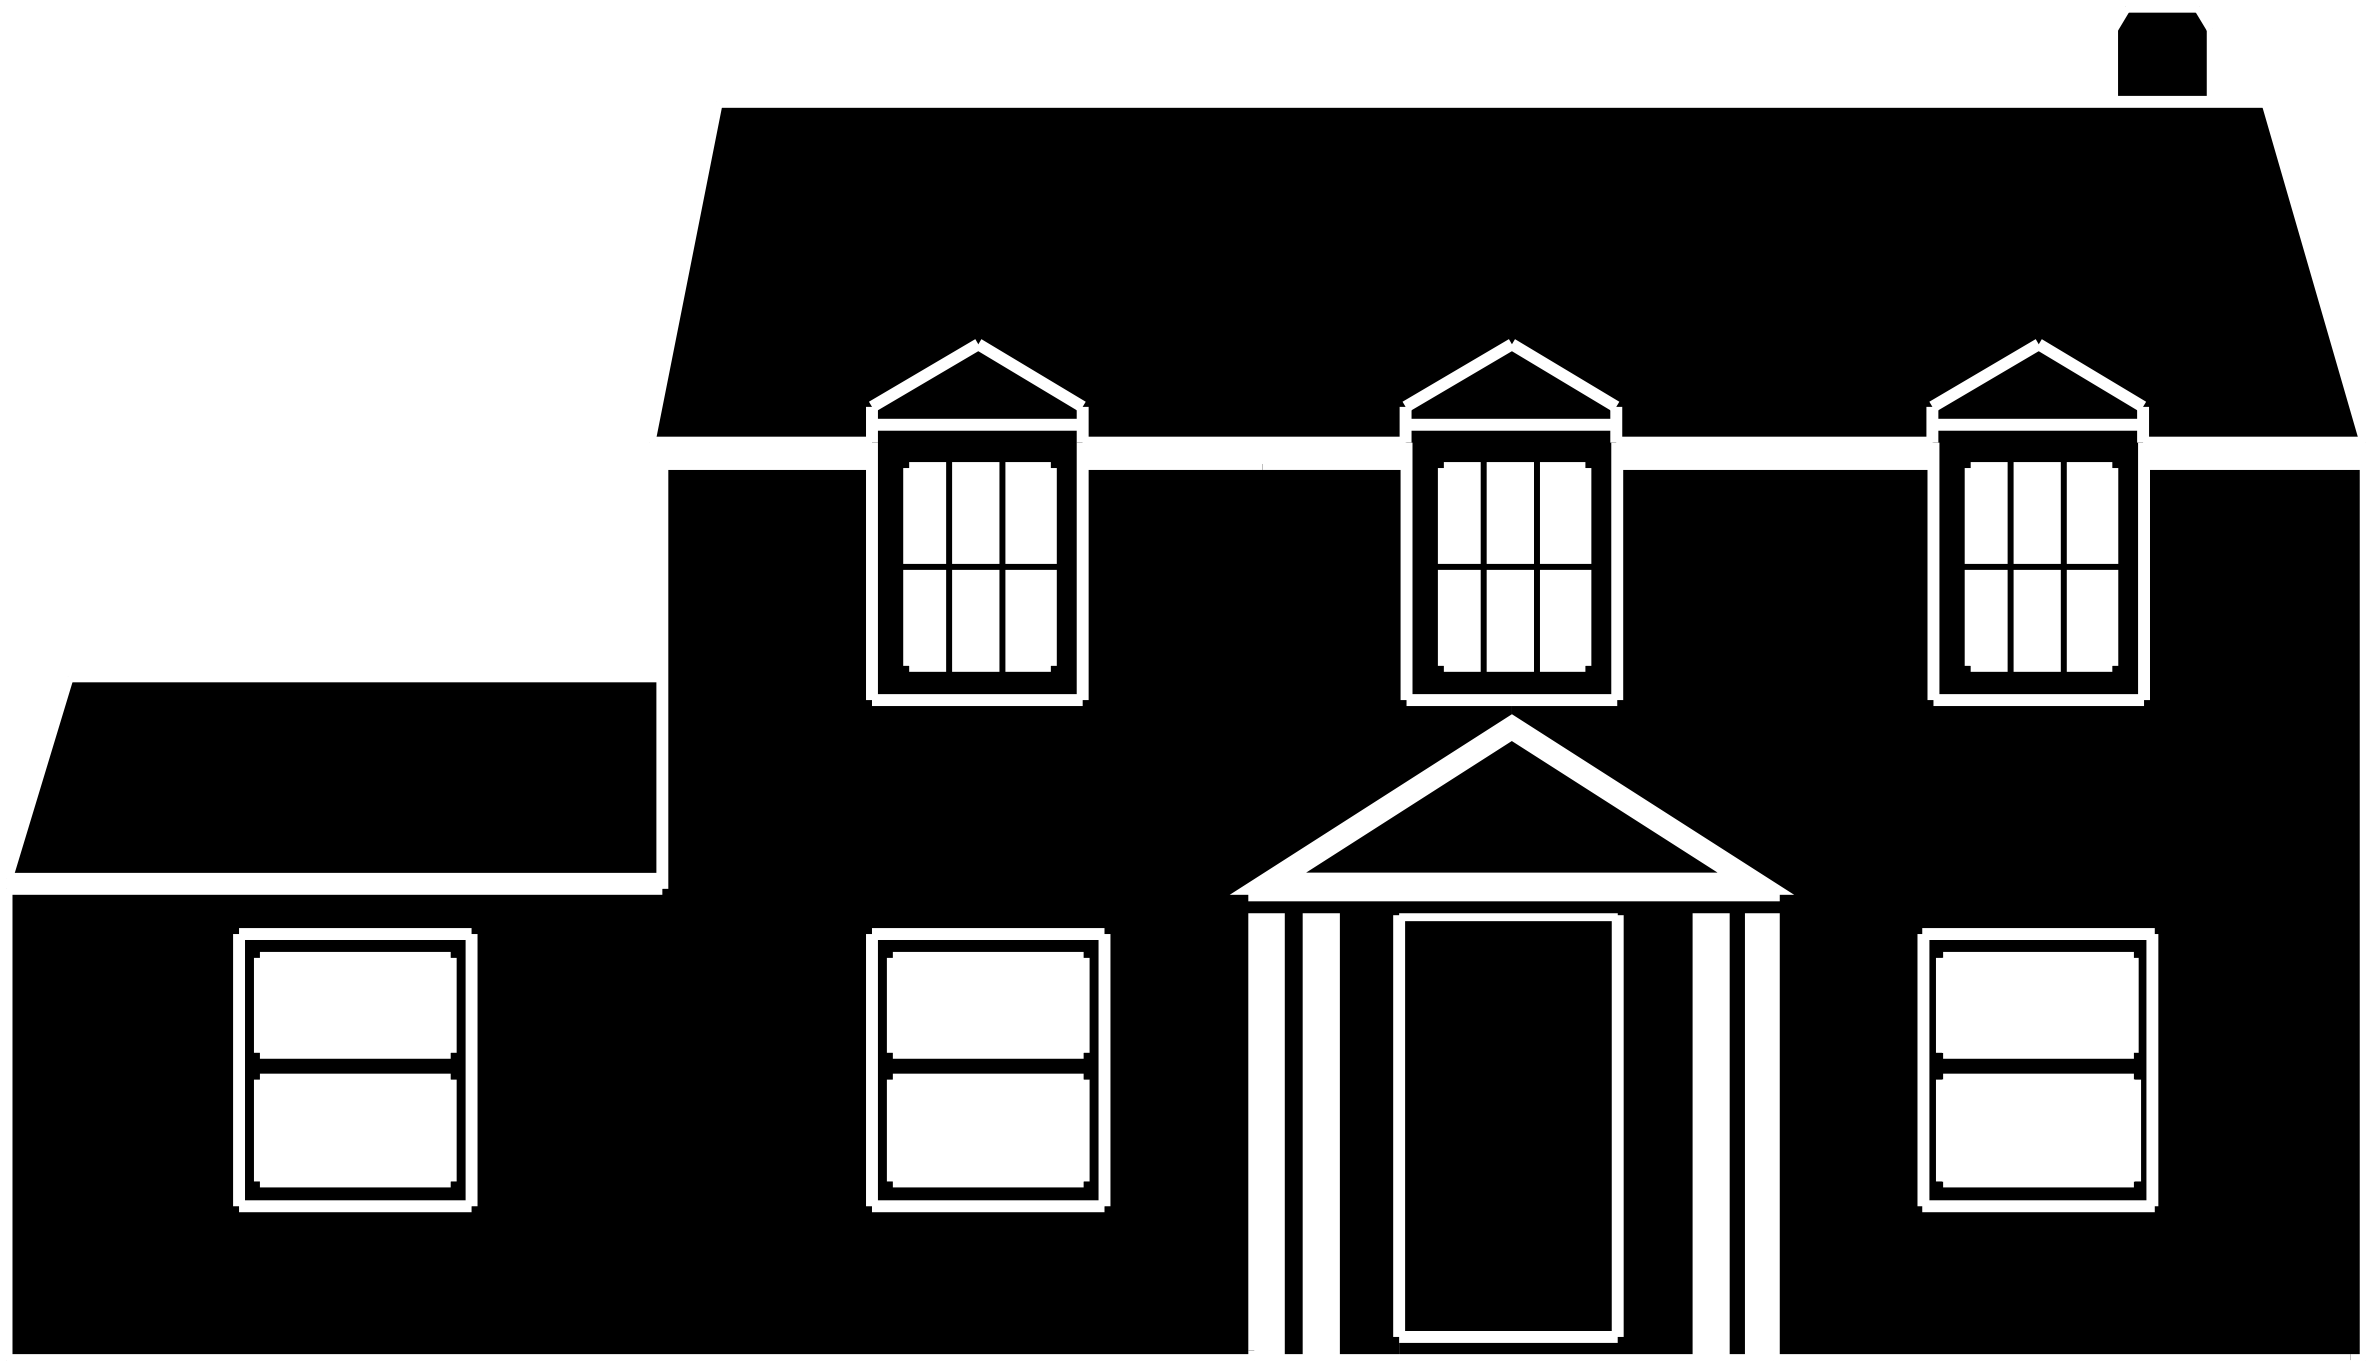 The gallery for office building clipart black and white Black and white homes